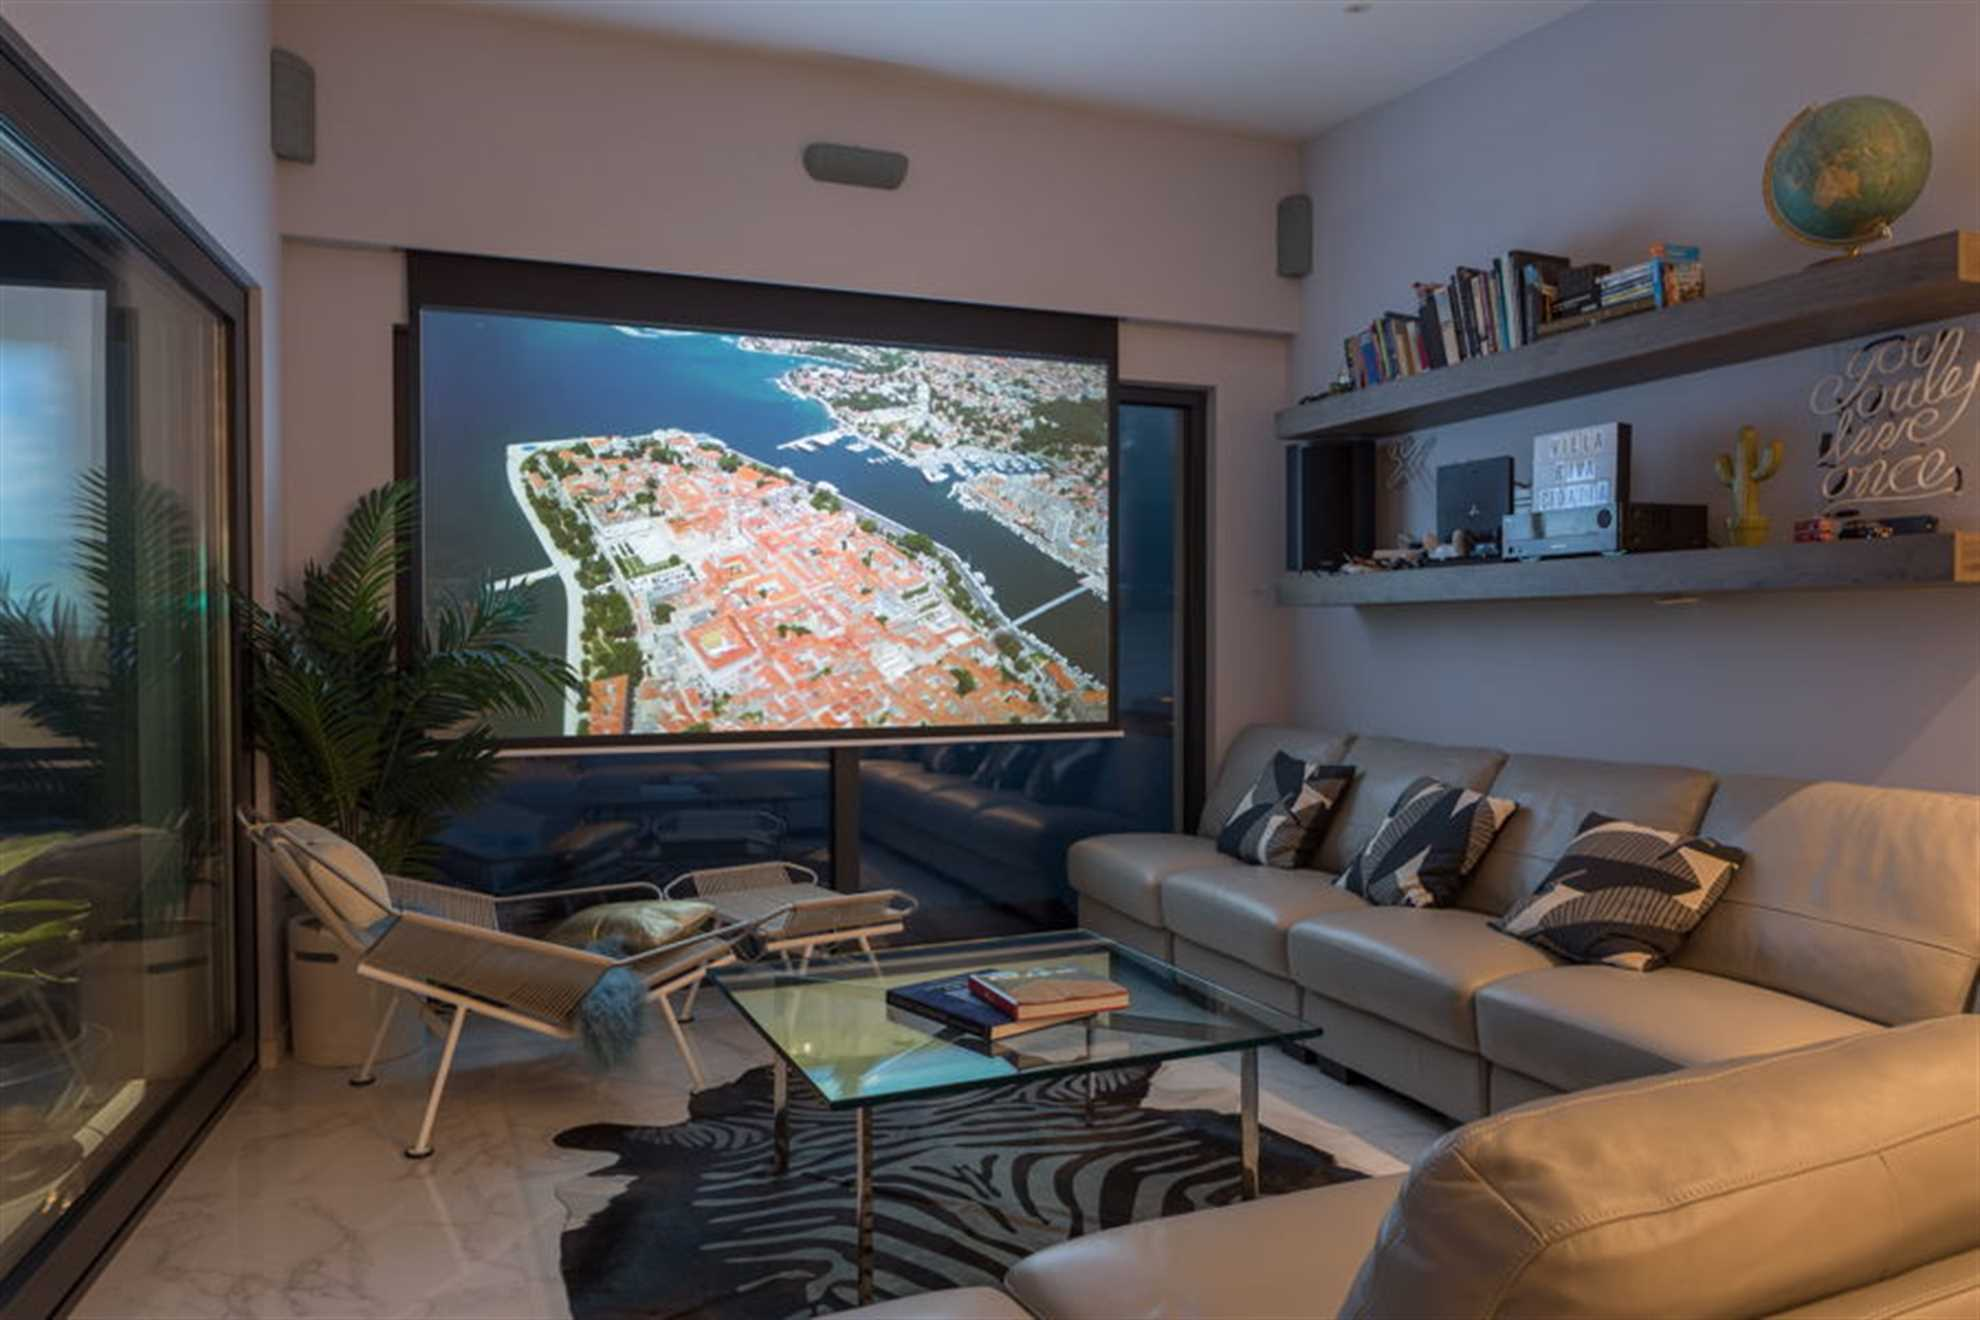 4K Projector with surround system